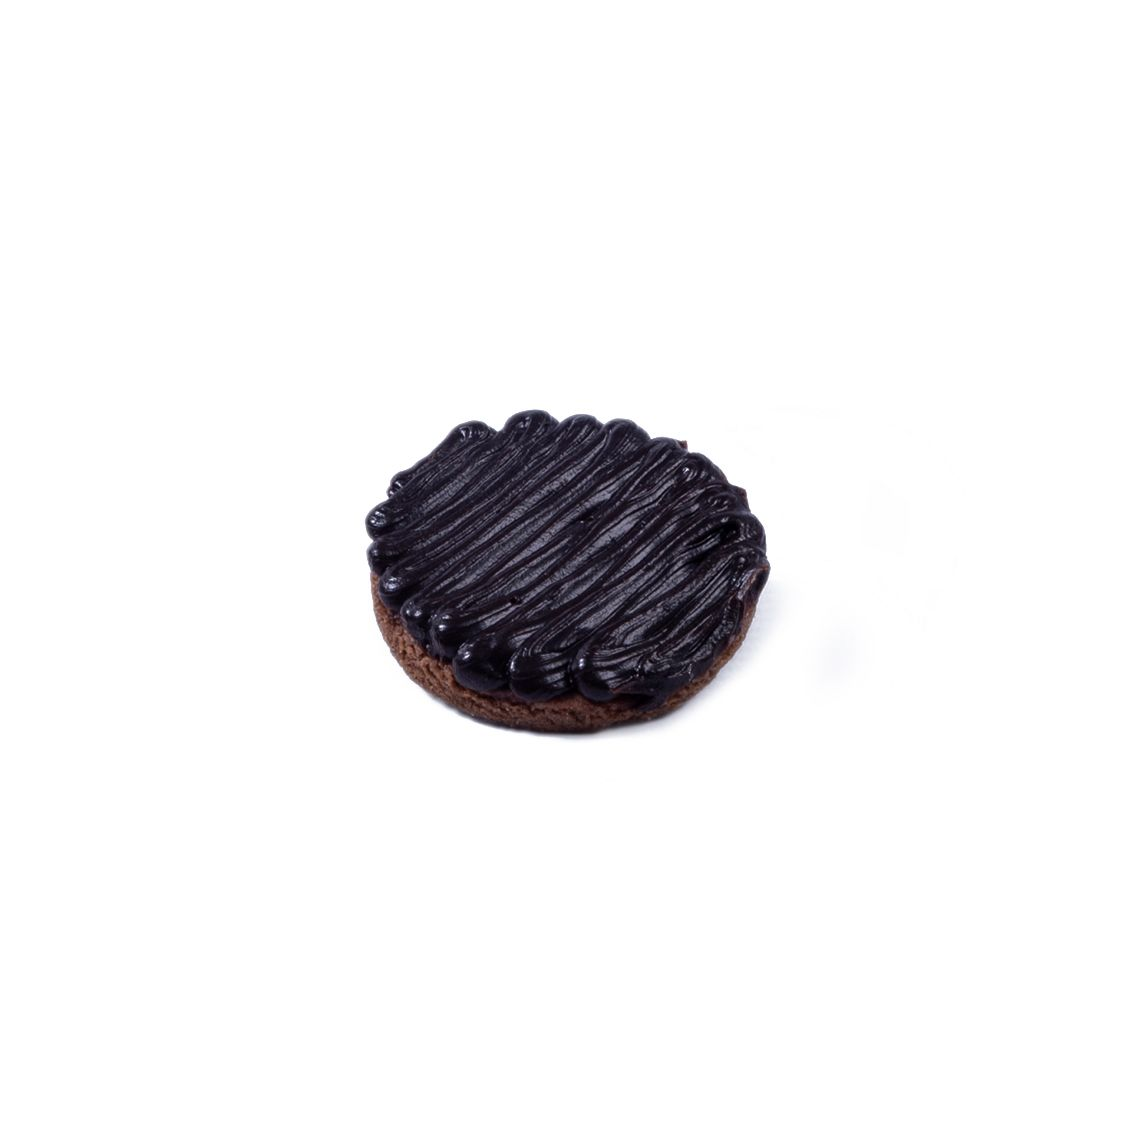 Kitchen Cuisine Default Category Chocolate Biscuit